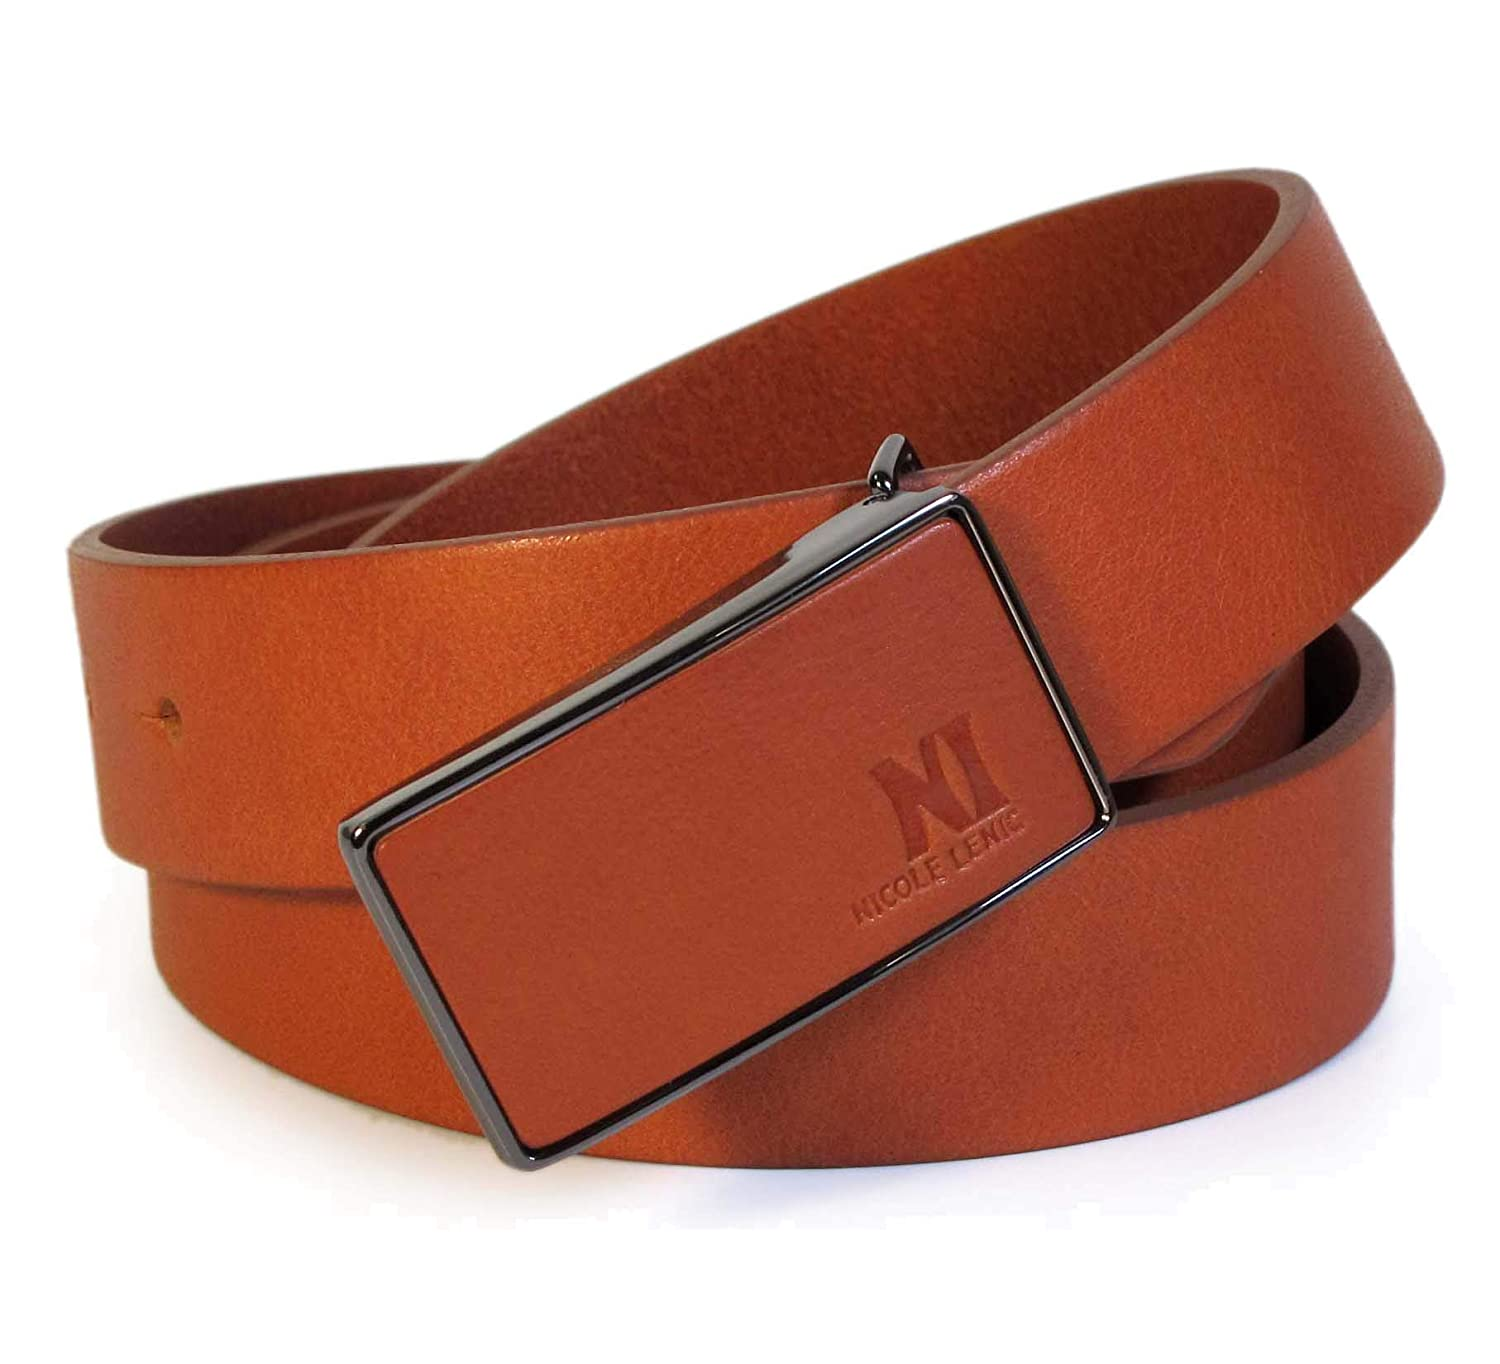 CM0 Mens Real Genuine Leather Tan Brown Belt 1.1 Wide S-L Thick Casual Jeans